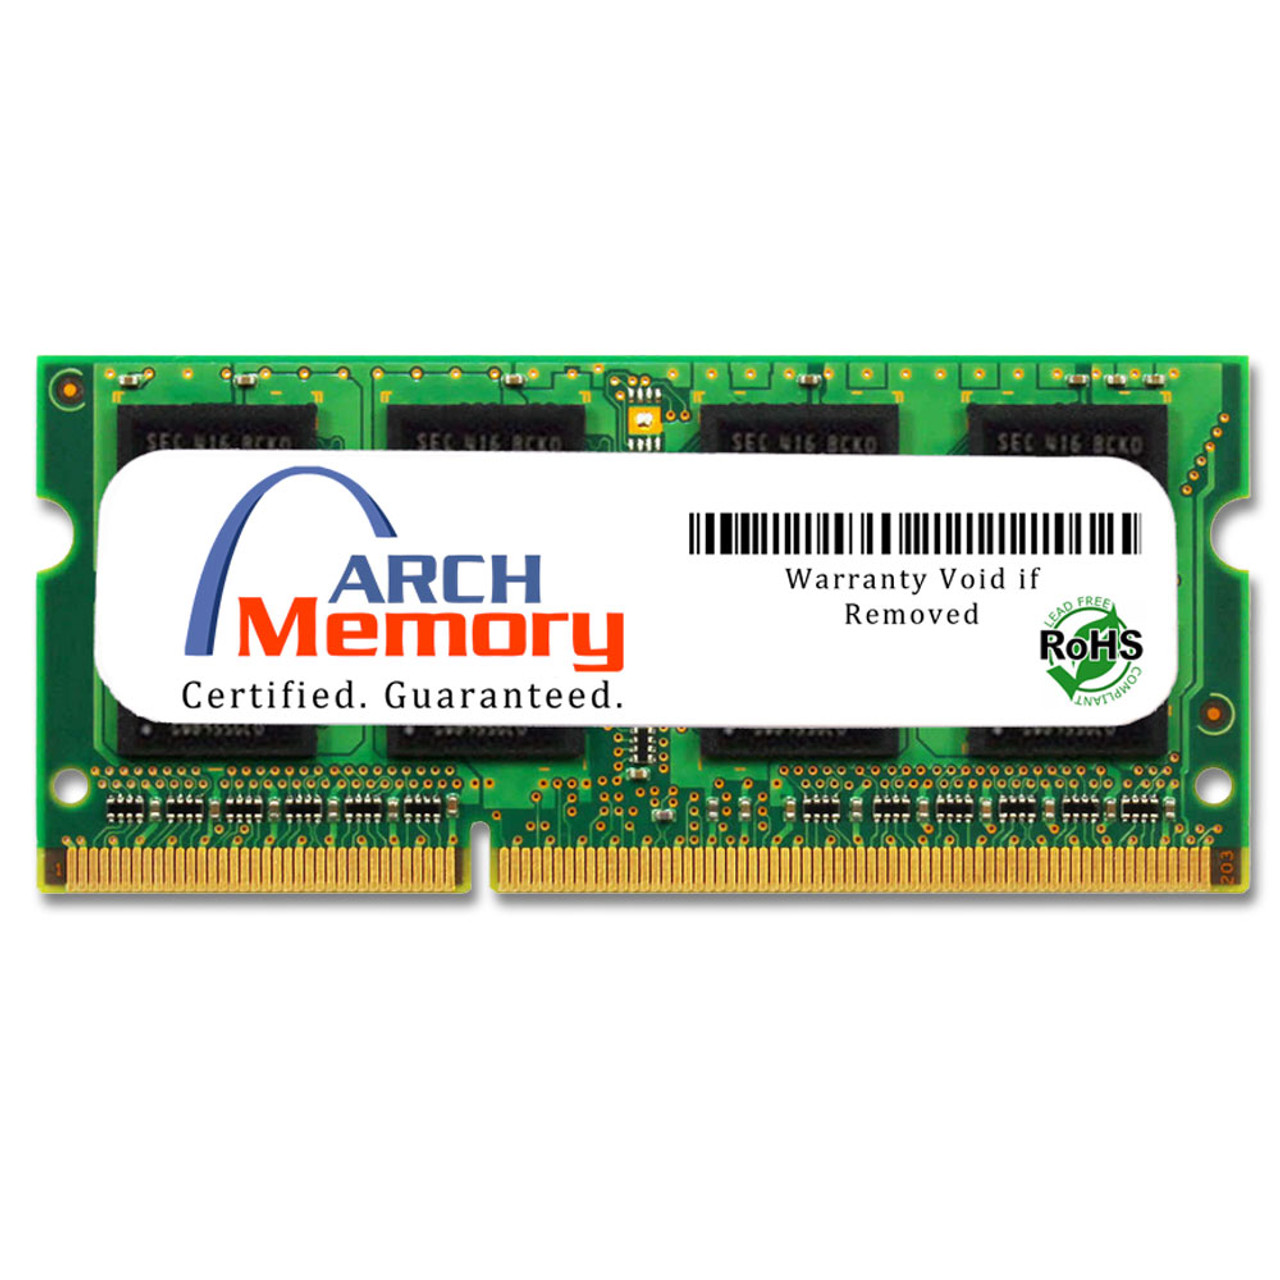 4GB 204-Pin DDR3-1066 PC3-8500 Sodimm RAM